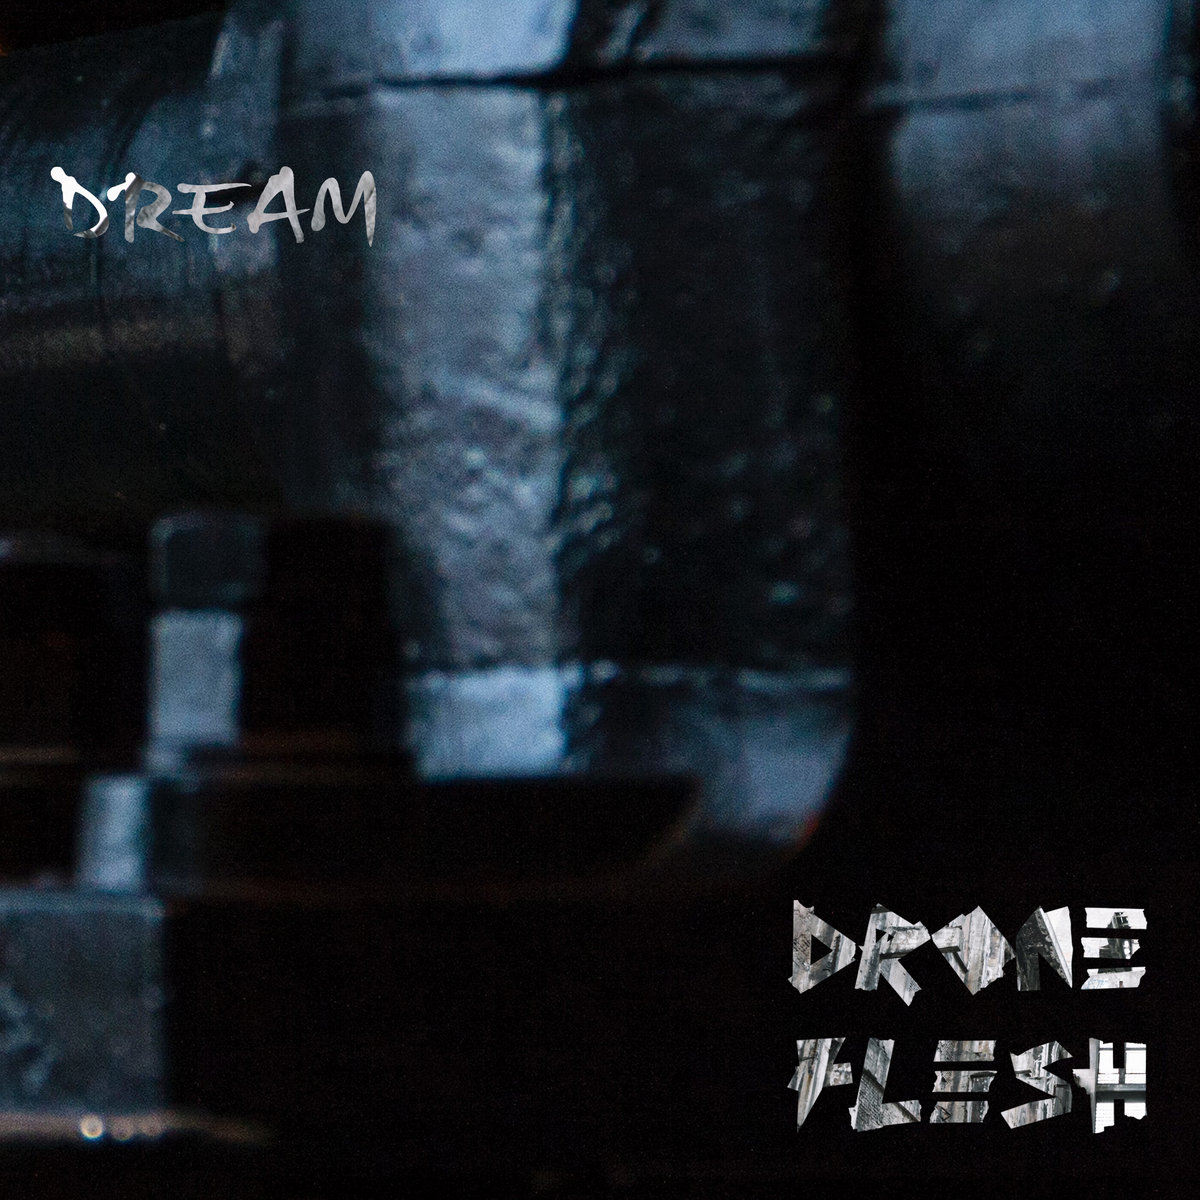 Dream by Drone Flesh